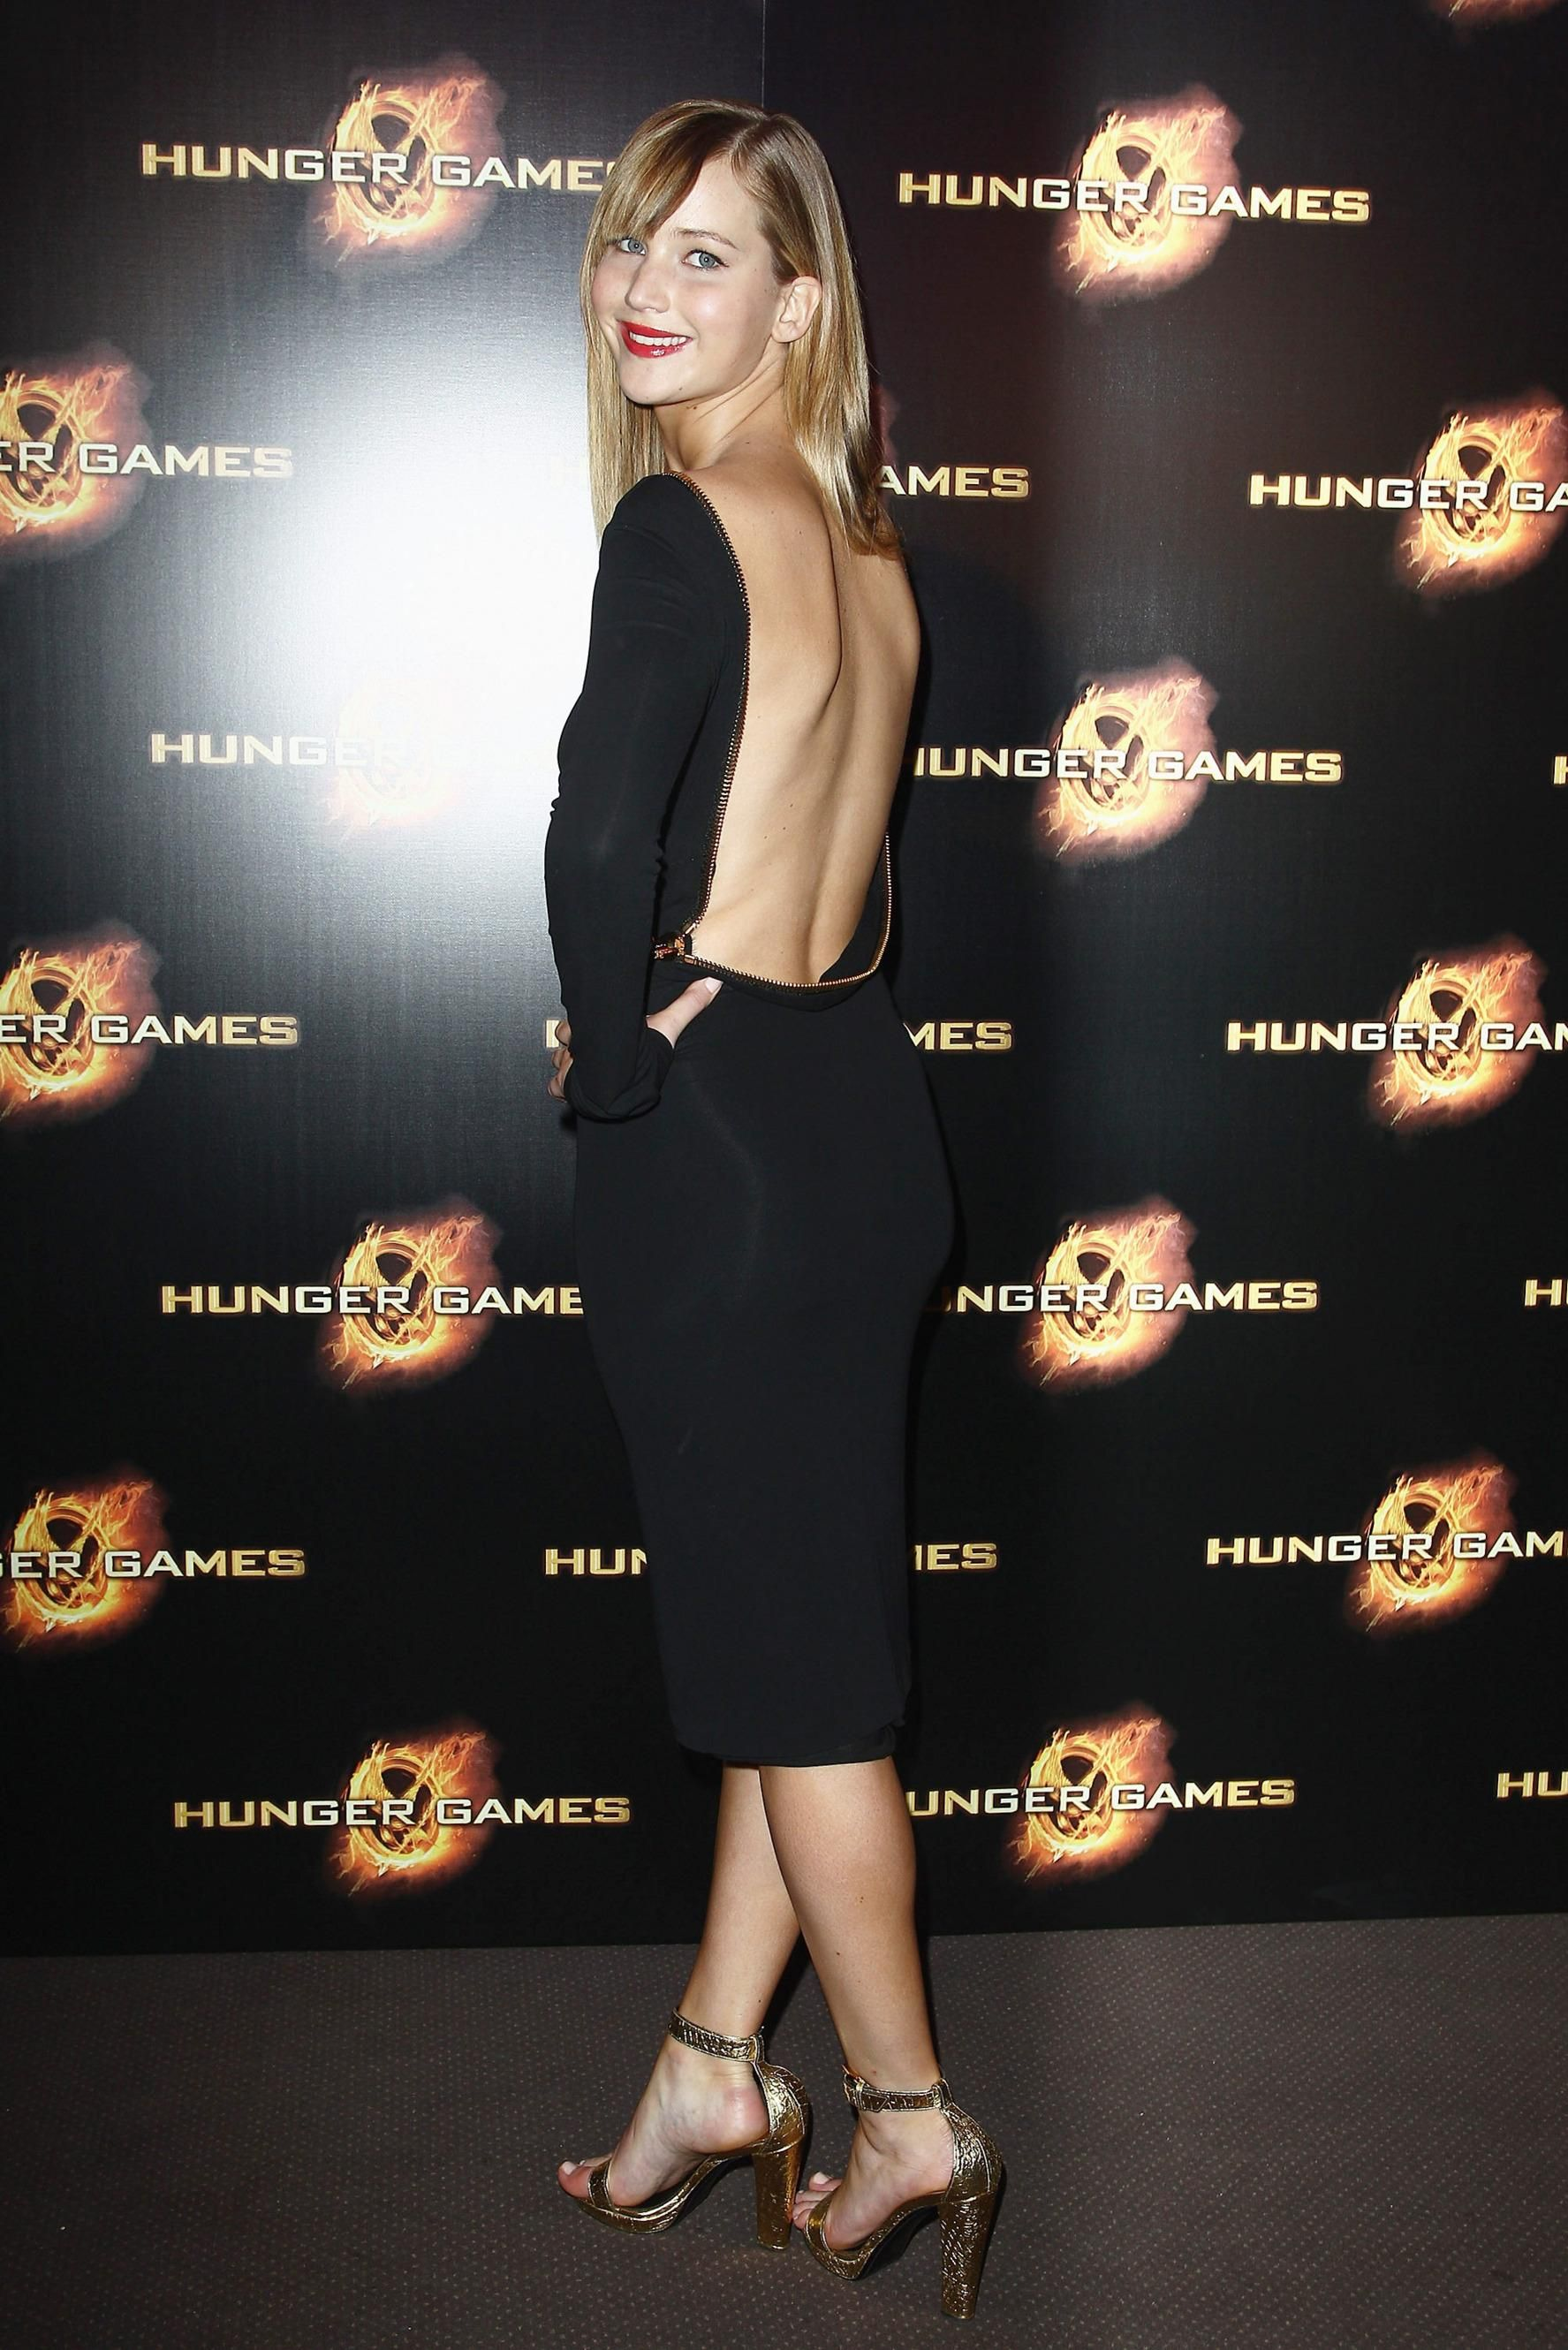 f5f2ca23fdeb0 ... Jennifer Lawrence s Stunning Hunger Games Premiere Looks So Far! Tom  Ford Backless Zipper Dress Is One Of The Sexiest Dresses Of All Time